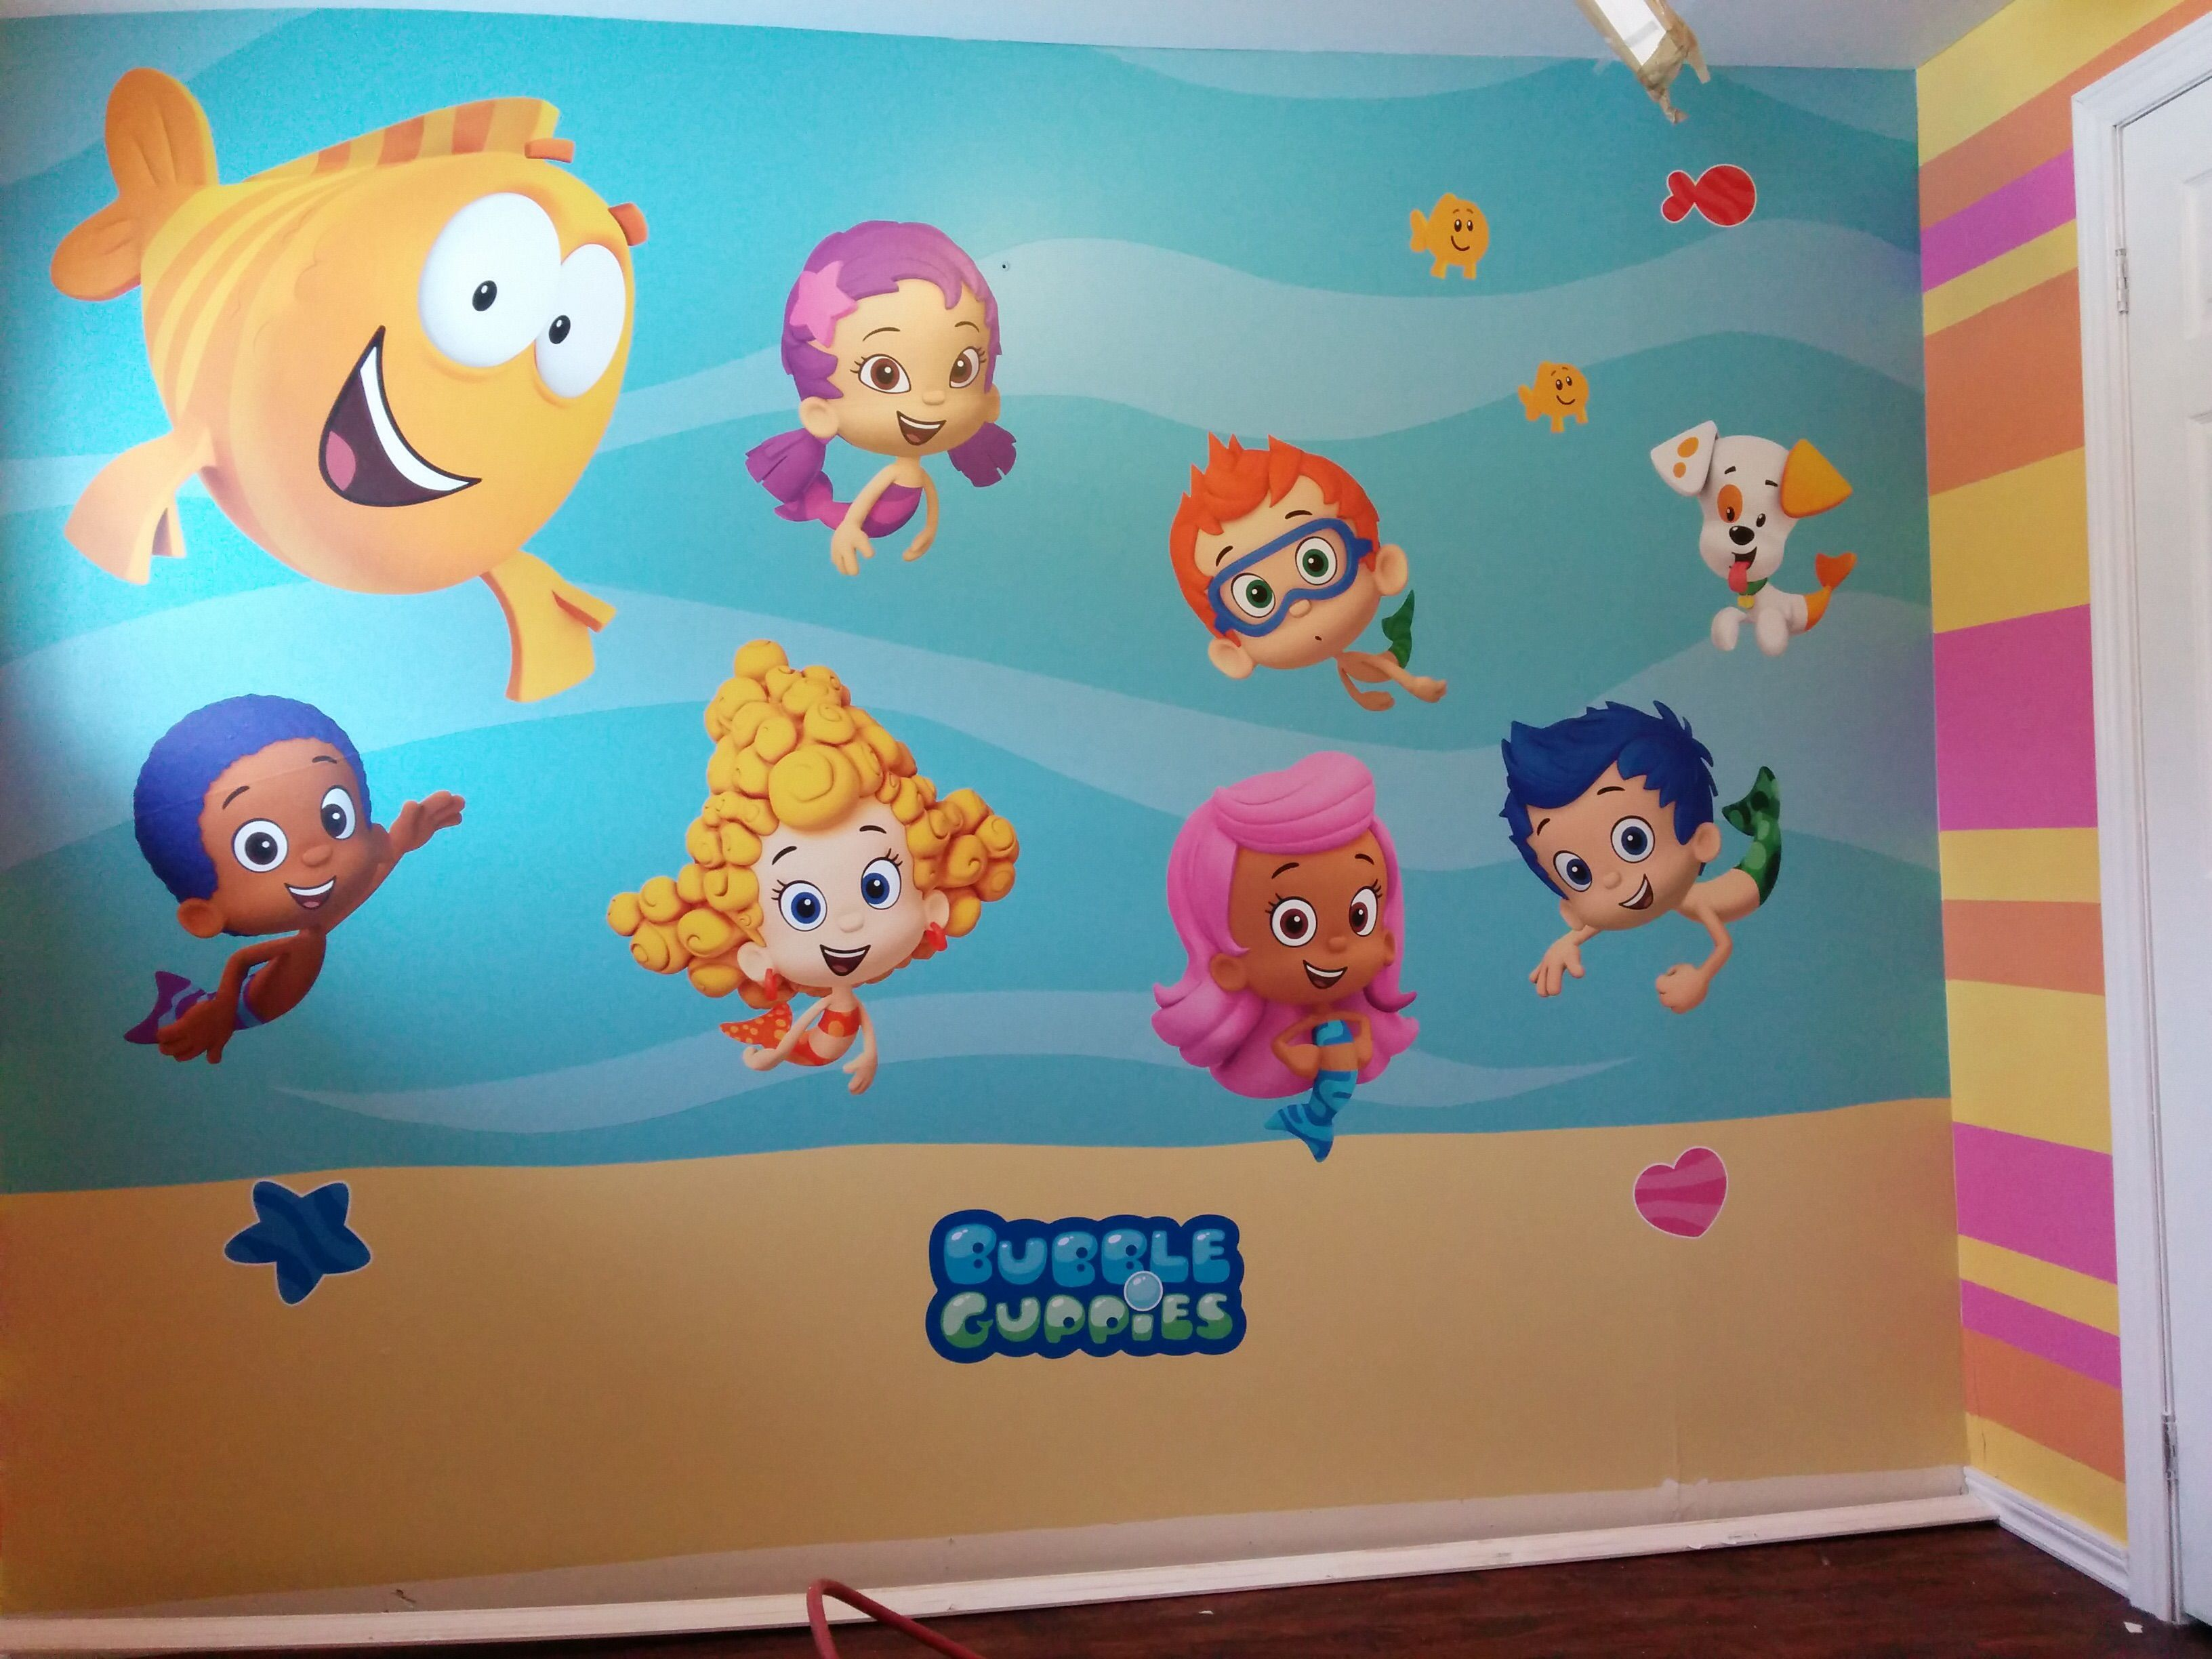 Bubble Guppies Mural Painted Background And Wall Decals Paint Background Wall Decals Mural Bubble guppies bedroom decor